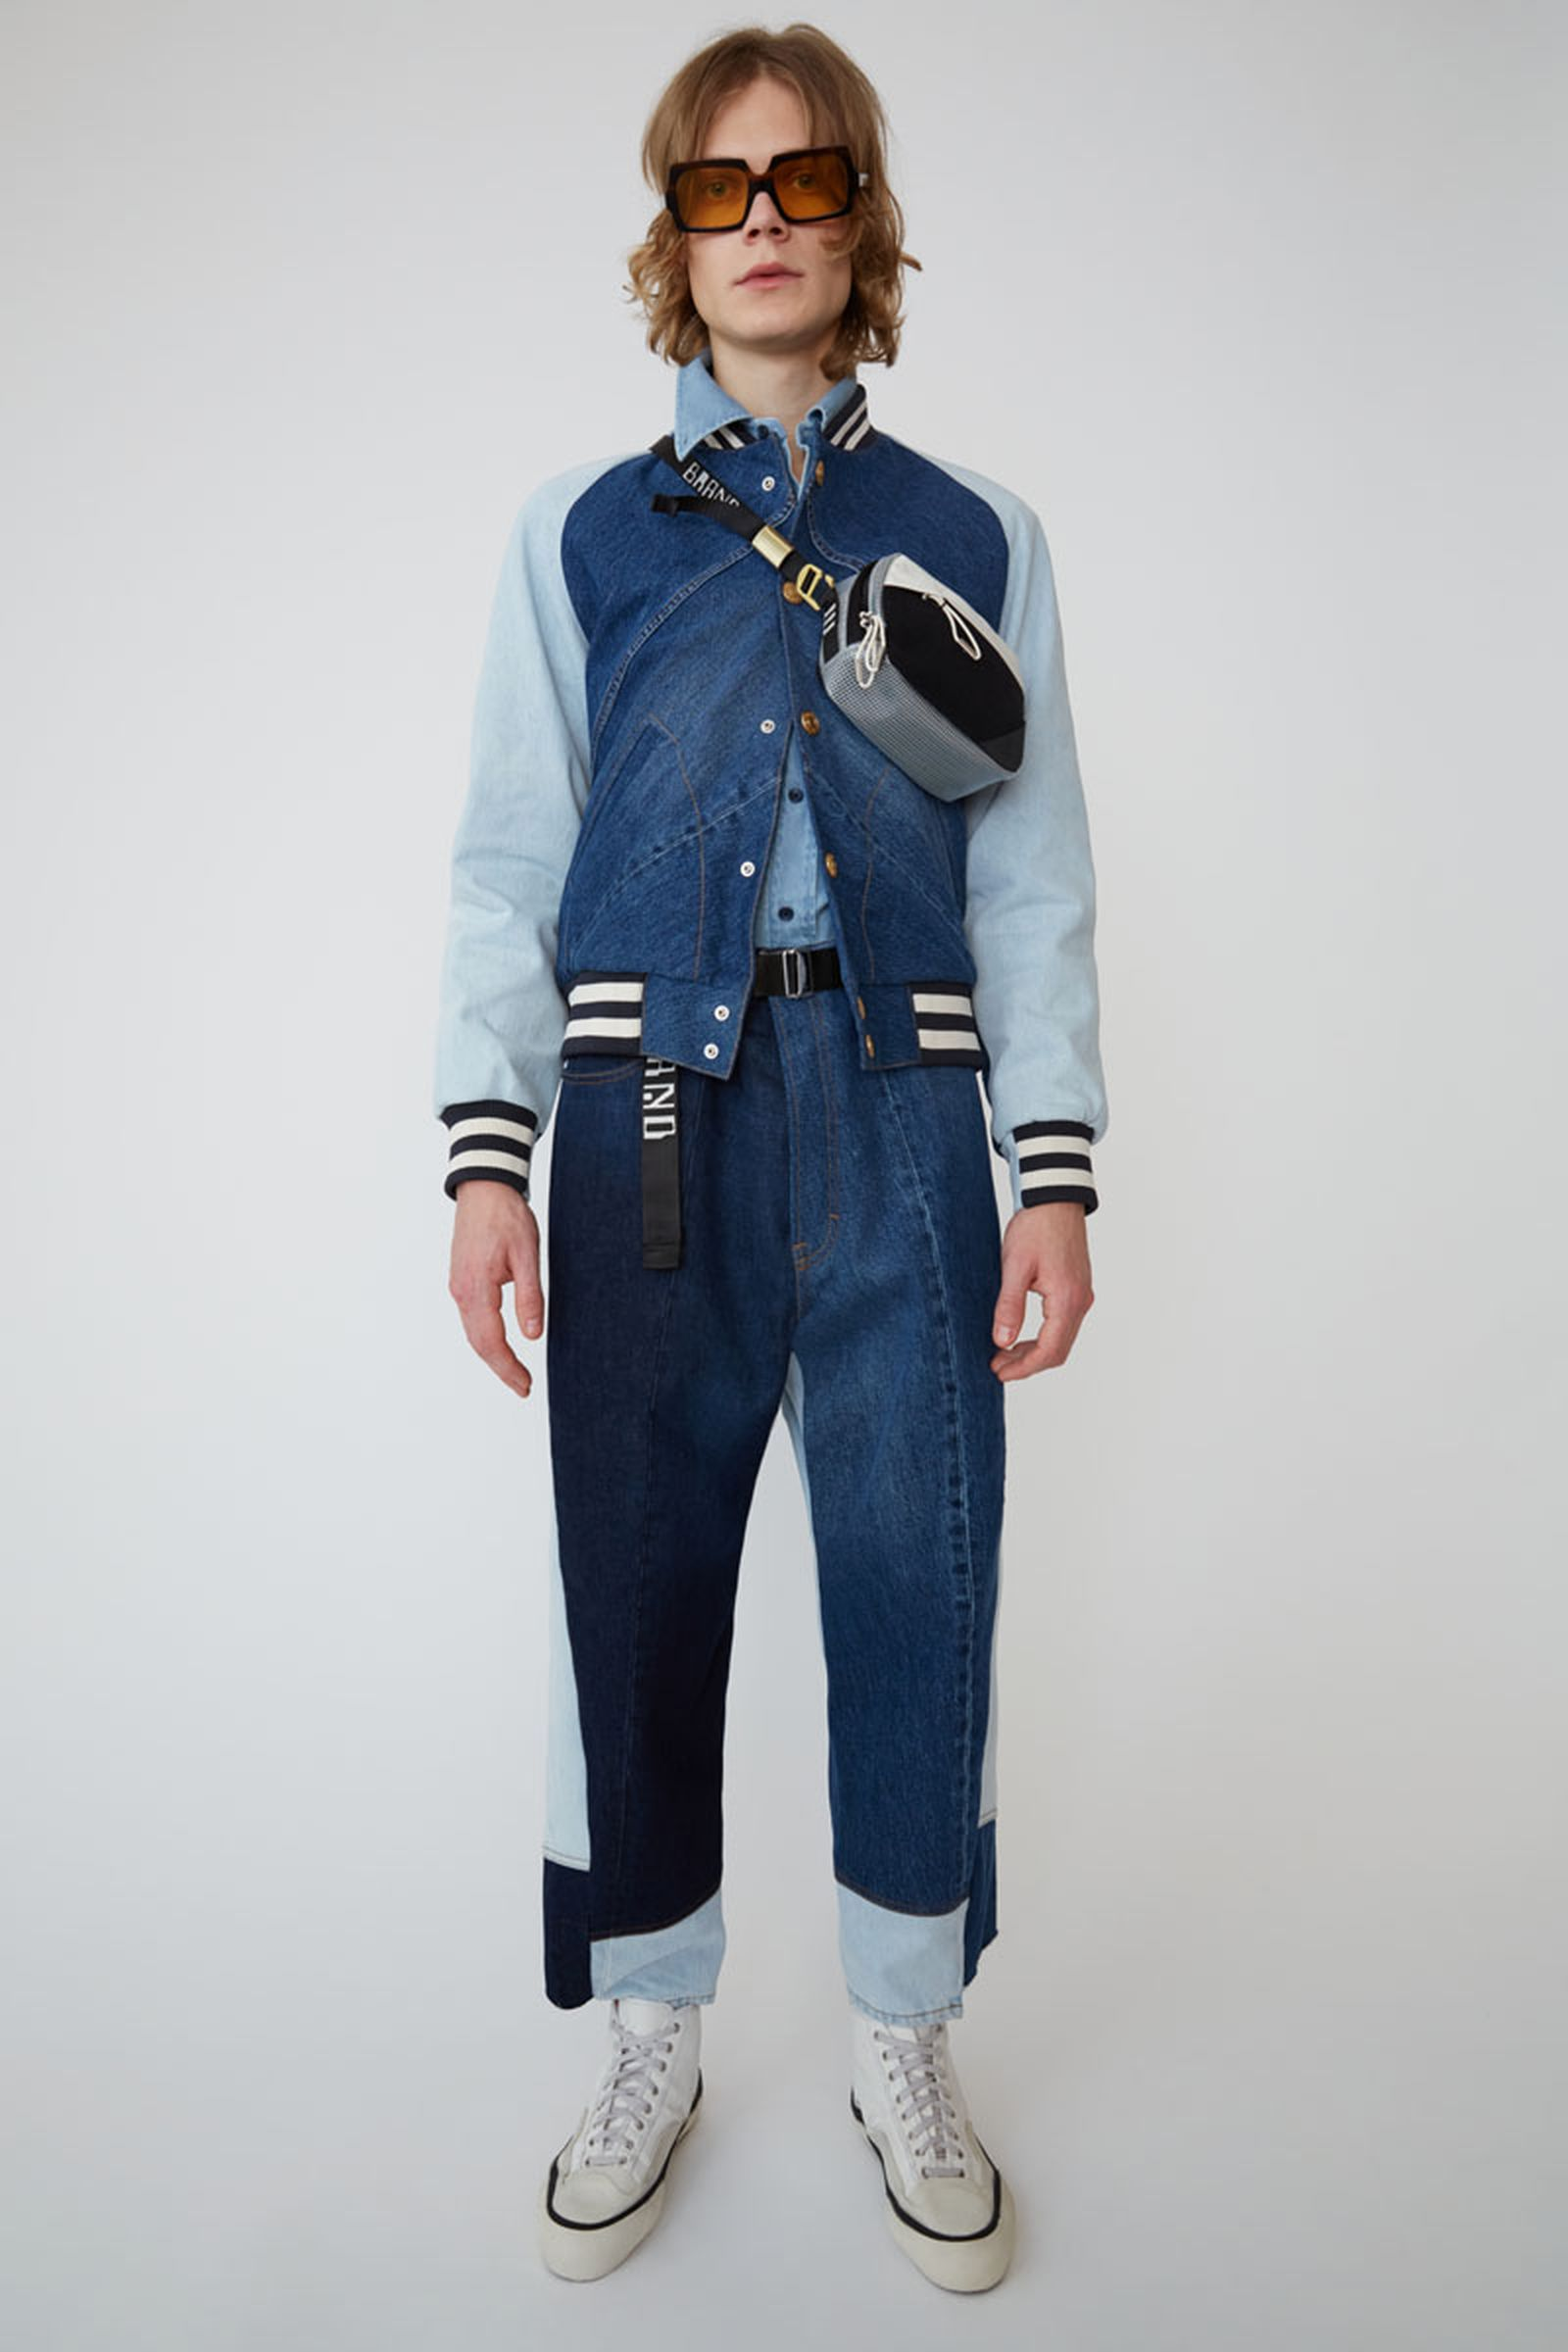 11acne studios ss19 denim collection